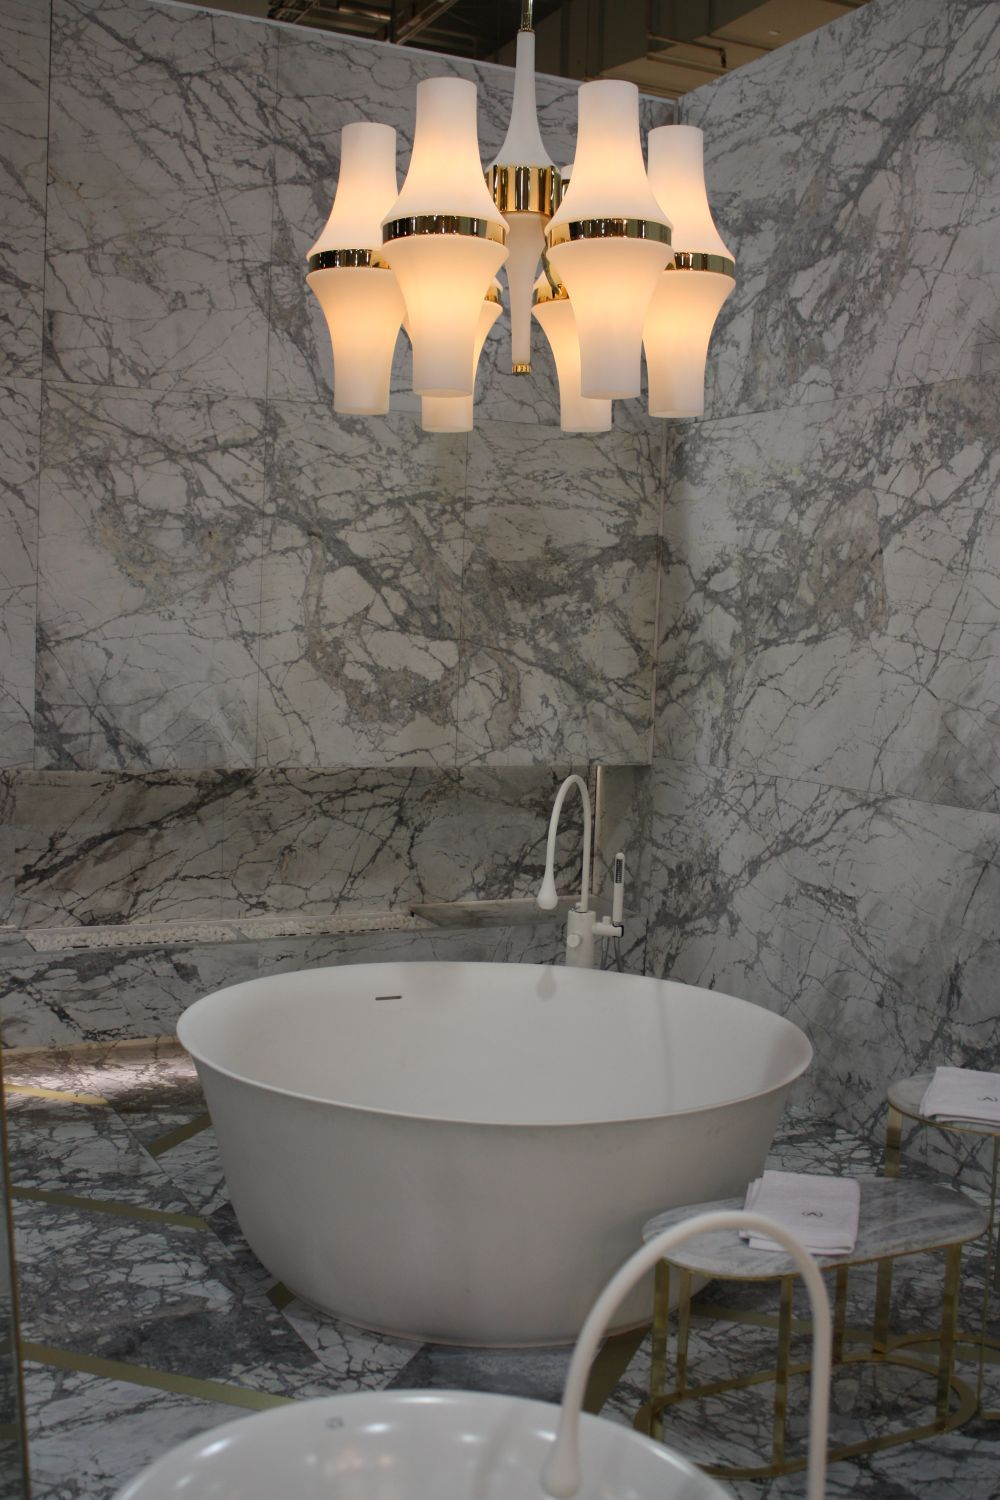 Every bathroom is a perfect blend of sophistication and simplicity